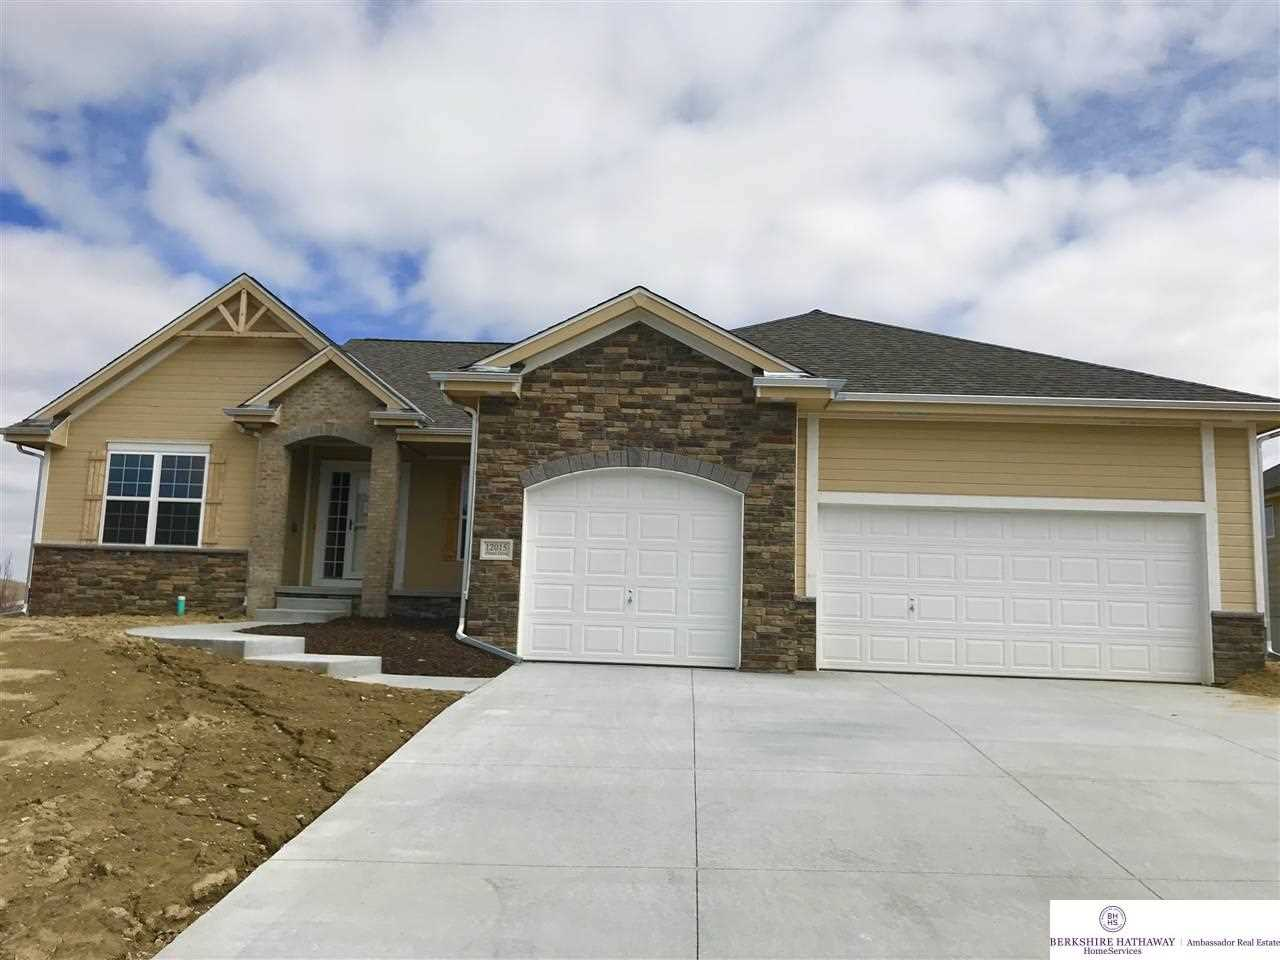 12015 Pintail Papillion, NE 68046 | MLS 21801849 Photo 1